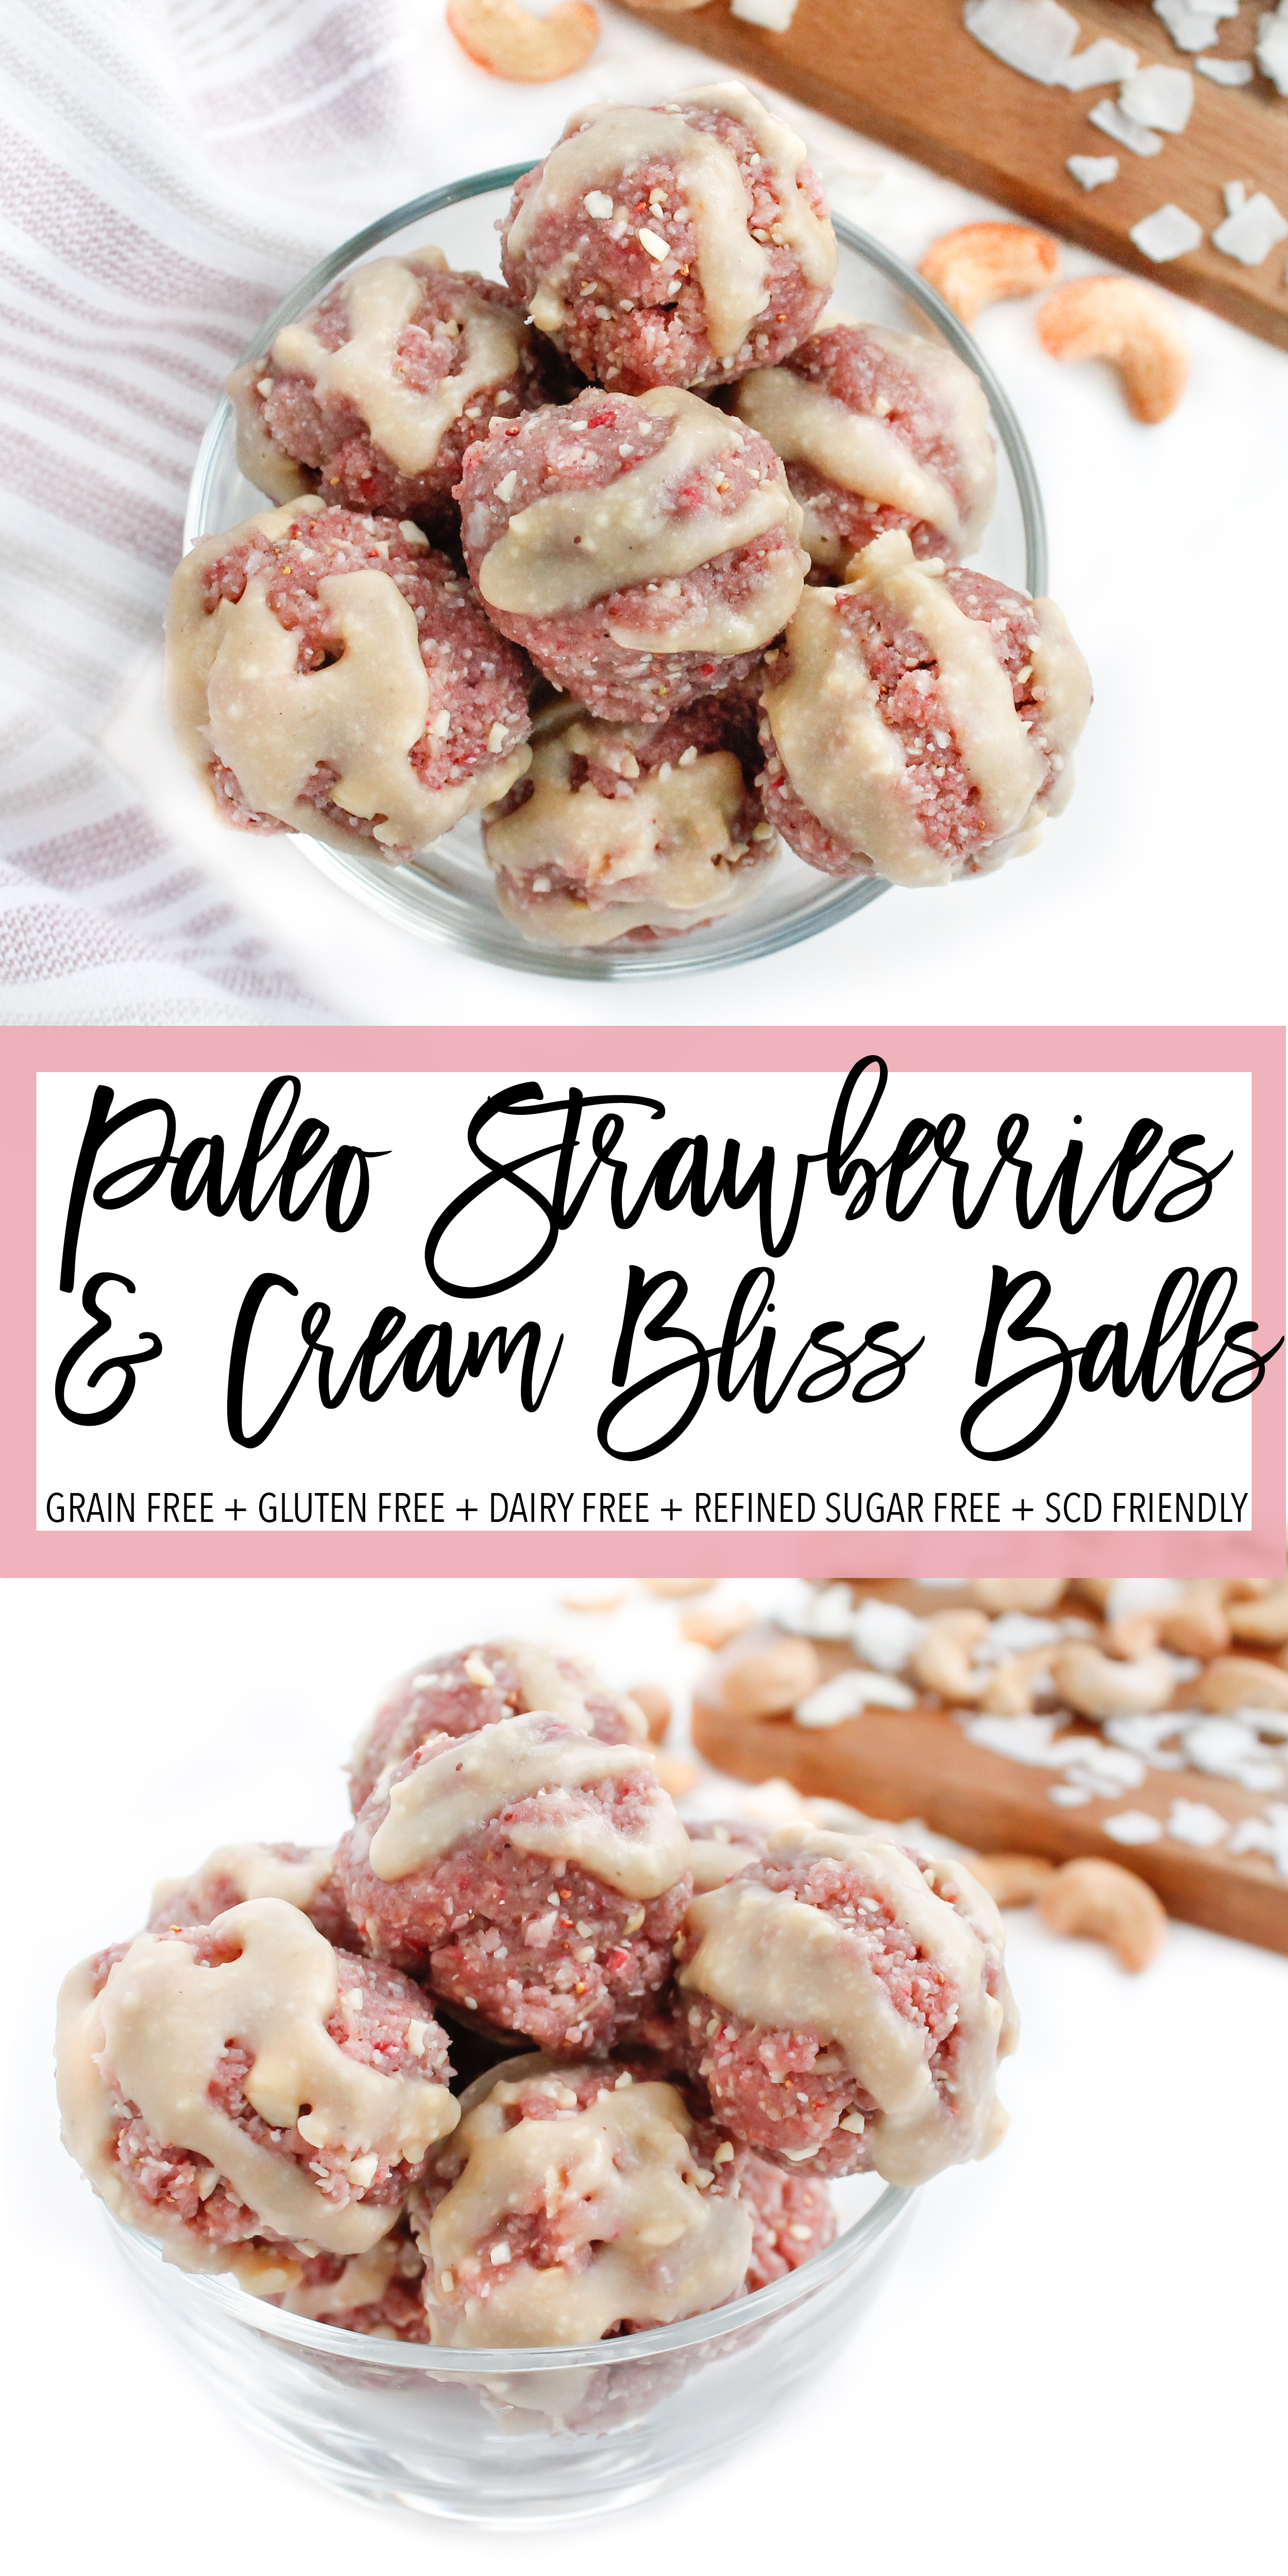 These paleo and vegan strawberries and cram bliss balls are the perfect healthy snack or healthy dessert! They are grain free, gluten free, dairy free, refined sugar free and Specific Carbohydrate Diet friendly! They're the perfect allergy free energy ball recipe and are a great healthy kid recipe! #paleo #specificcarbohydratediet #antiinflammatory #energyballs